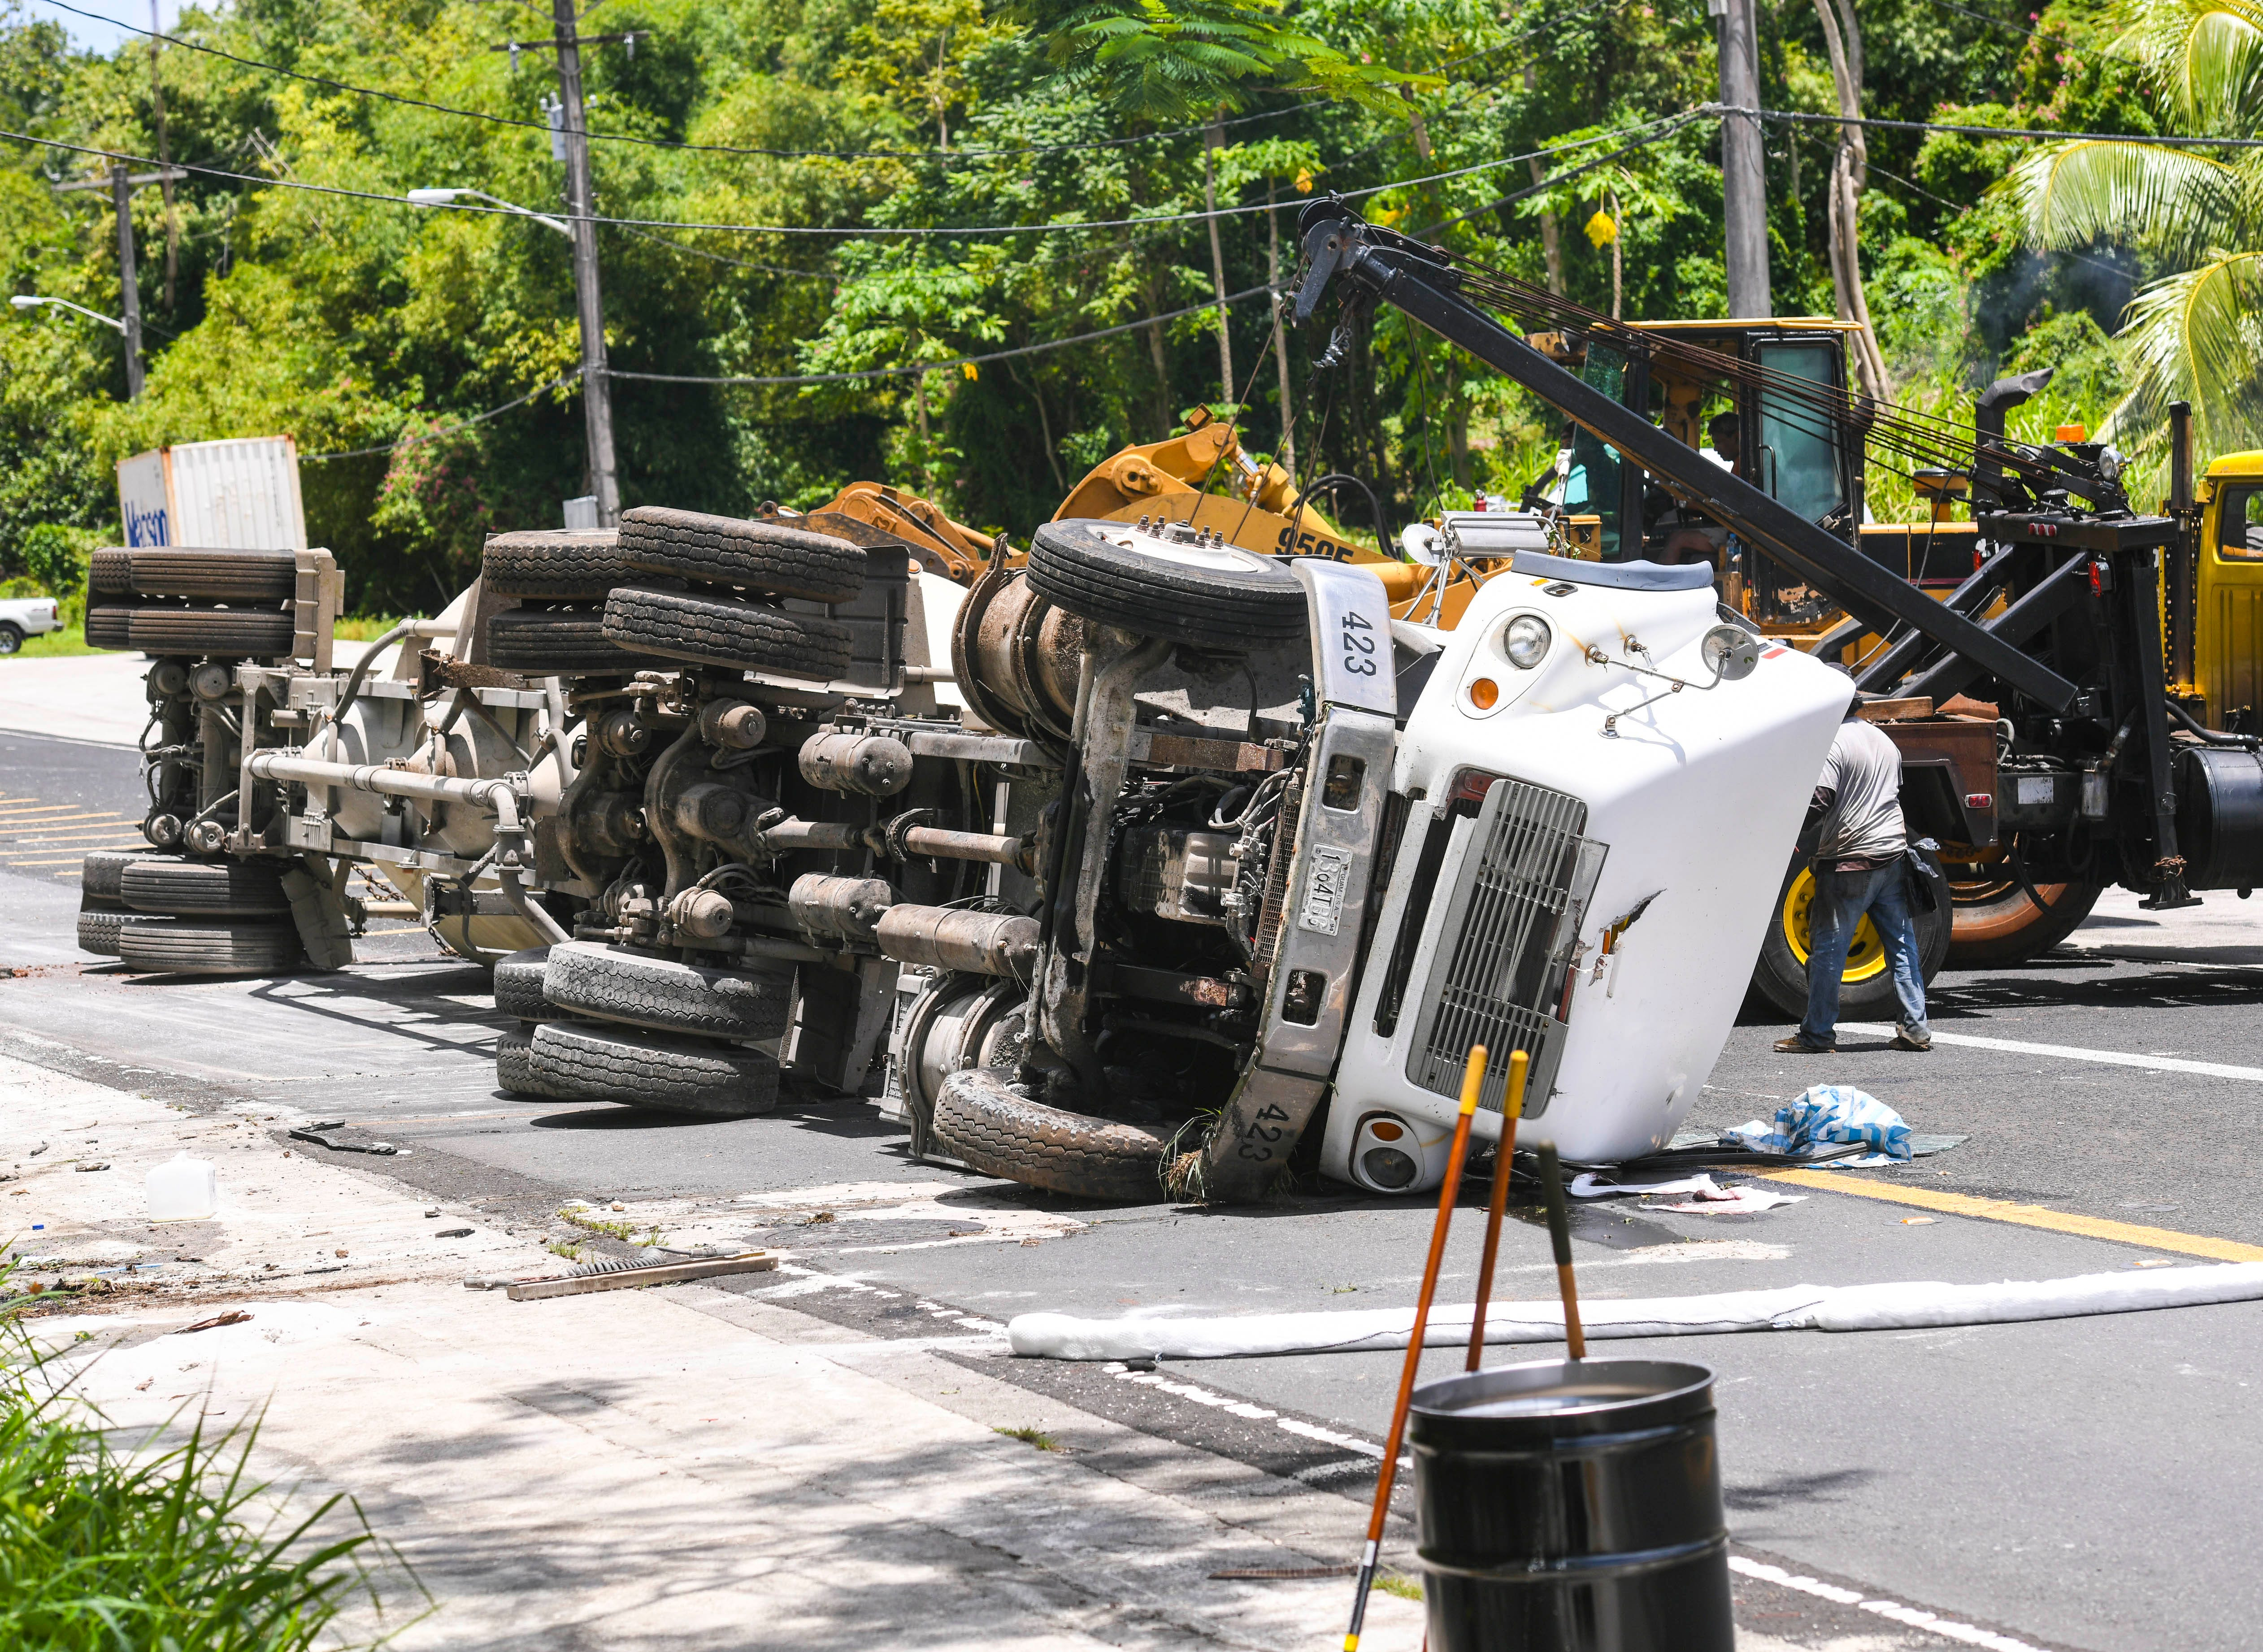 Department of Public Works employees and other emergency personnel respond to the crash of a tractor hauling a bulk cement transporter, on Route 6 near the Pacific War Museum, on Saturday, July 12, 2019.